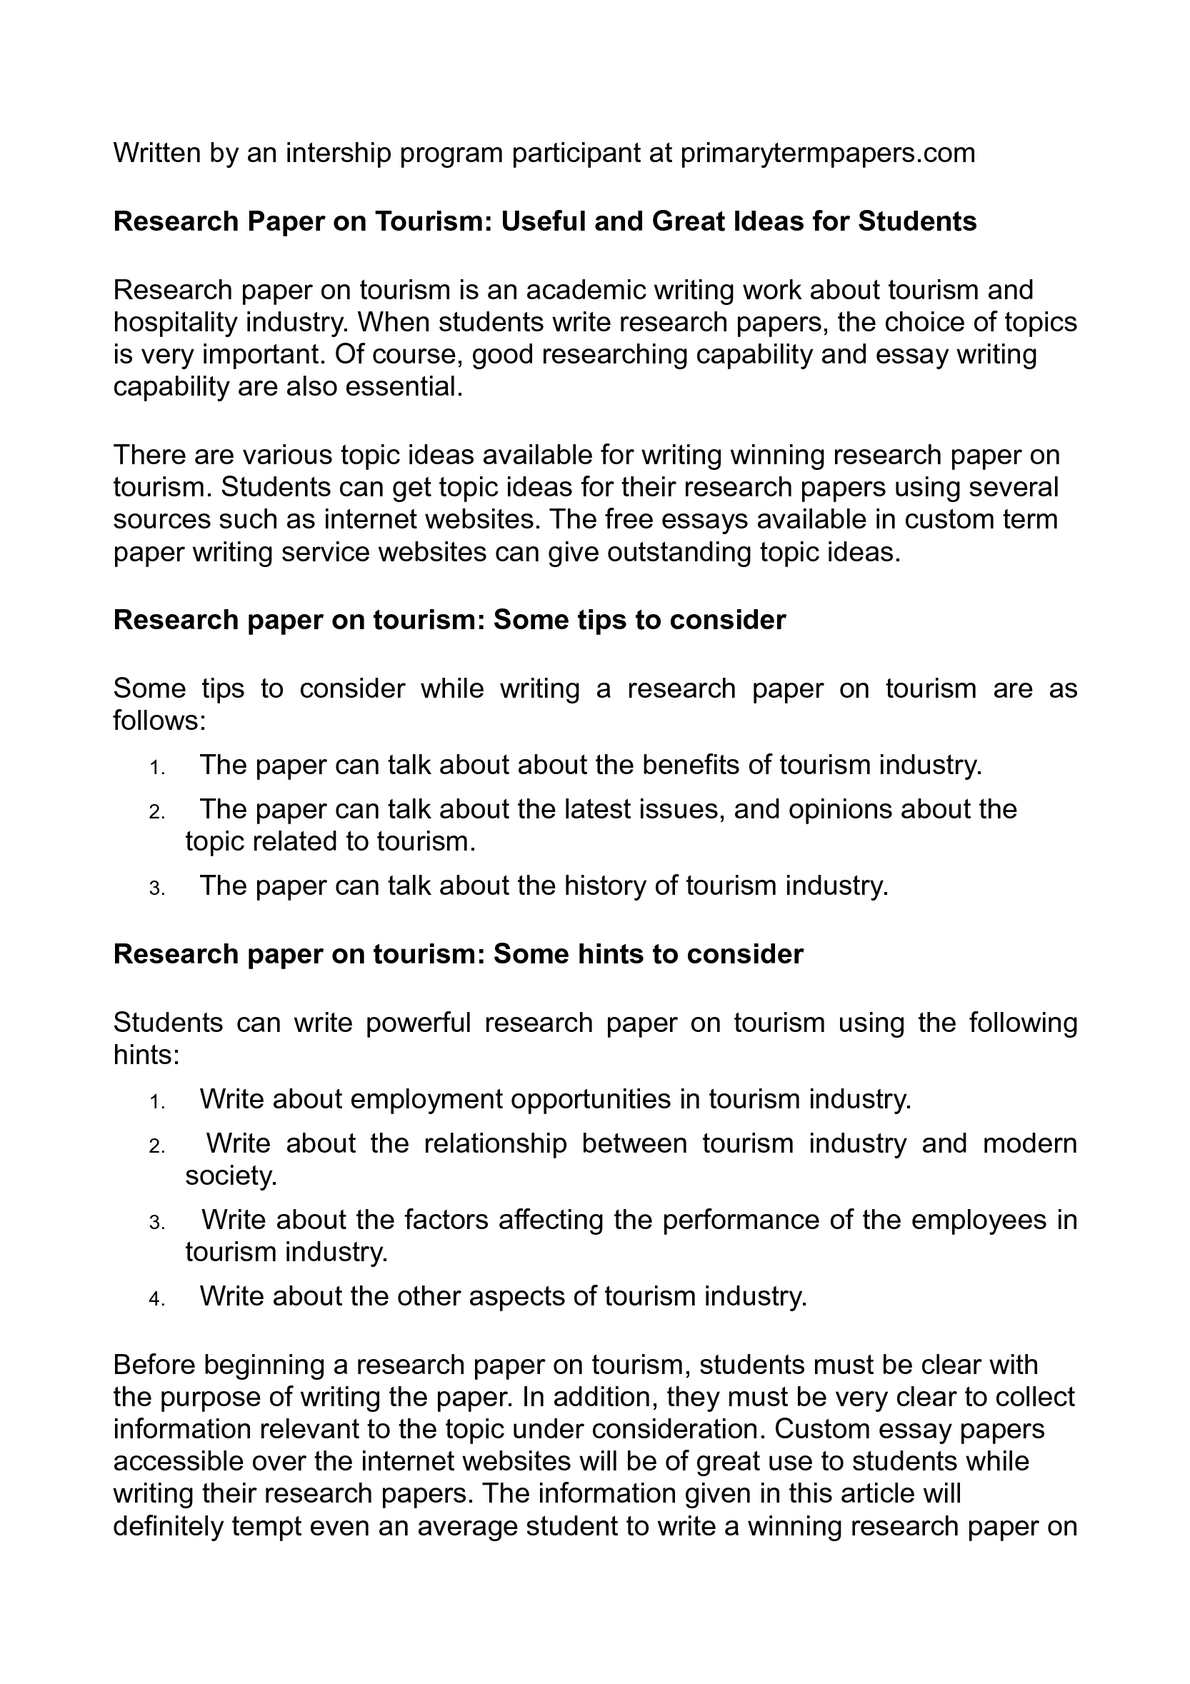 005 P1 Research Paper Best Free Outstanding Websites Full